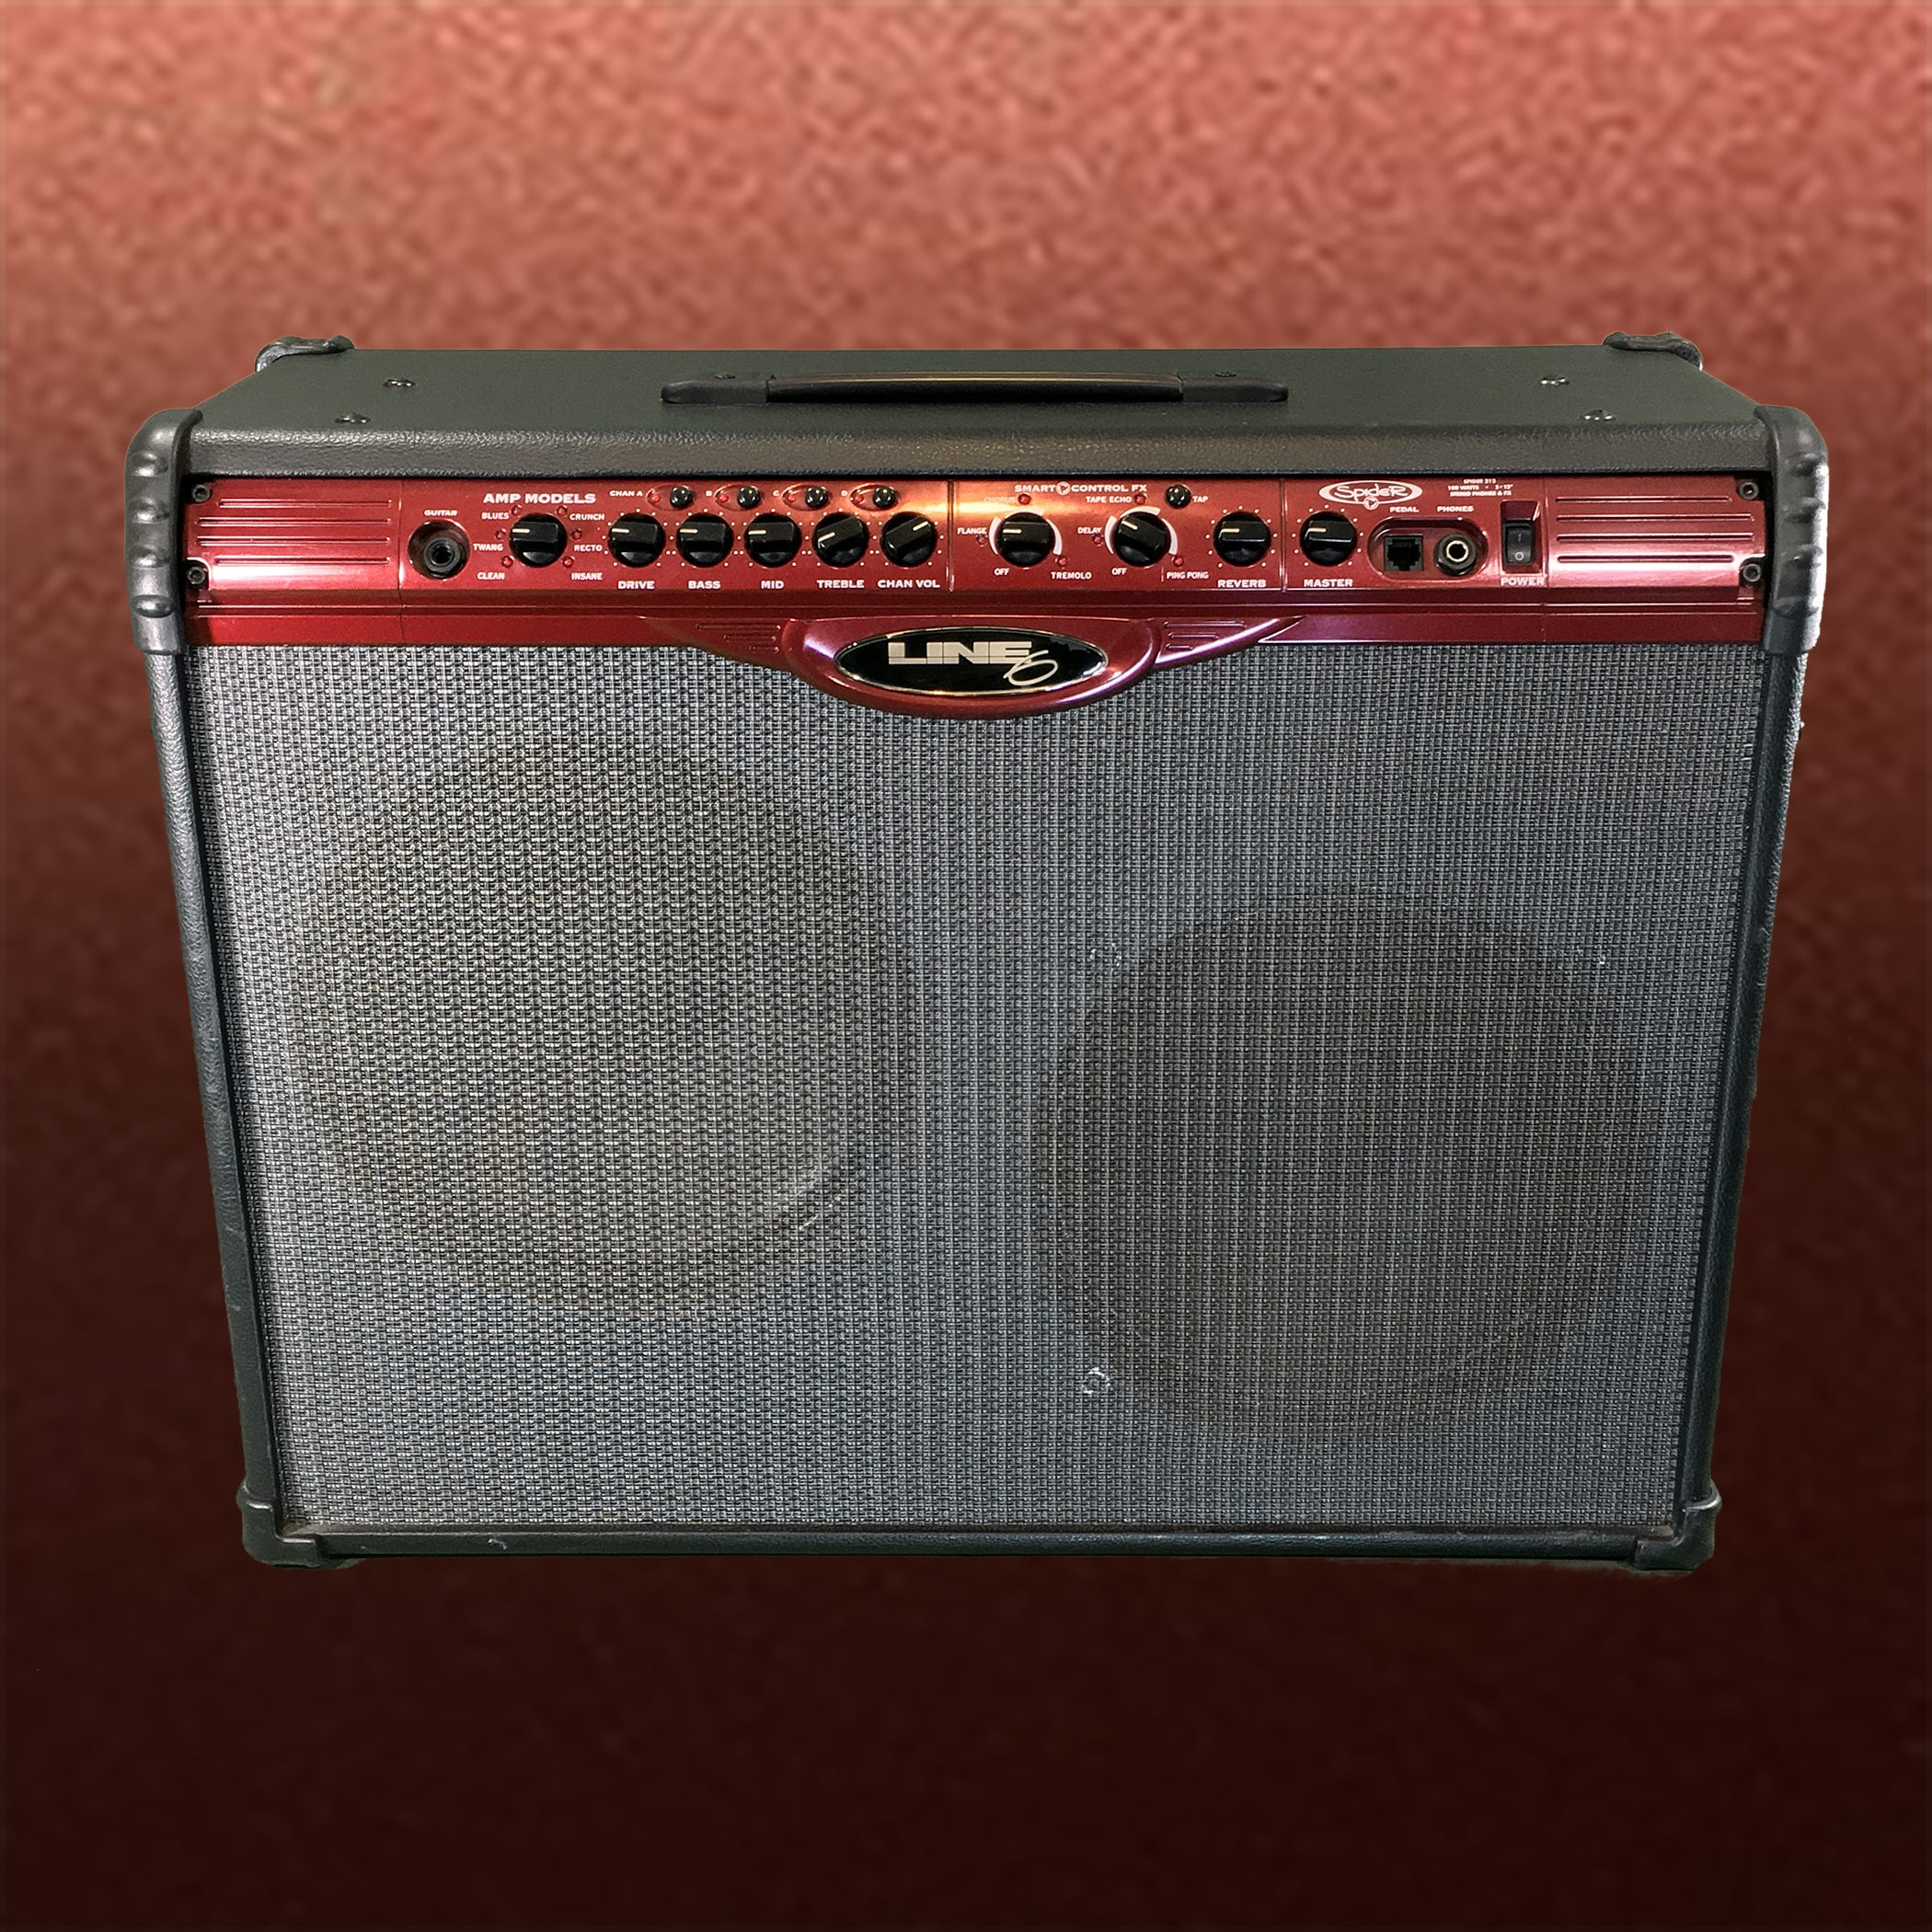 Guitar Amplifiers Tagged Amplifier Page 2 Huber Breese Music 70 Watt Circuit Preamplifier Tone Control For Line6 Spider 212 100 Combo Used